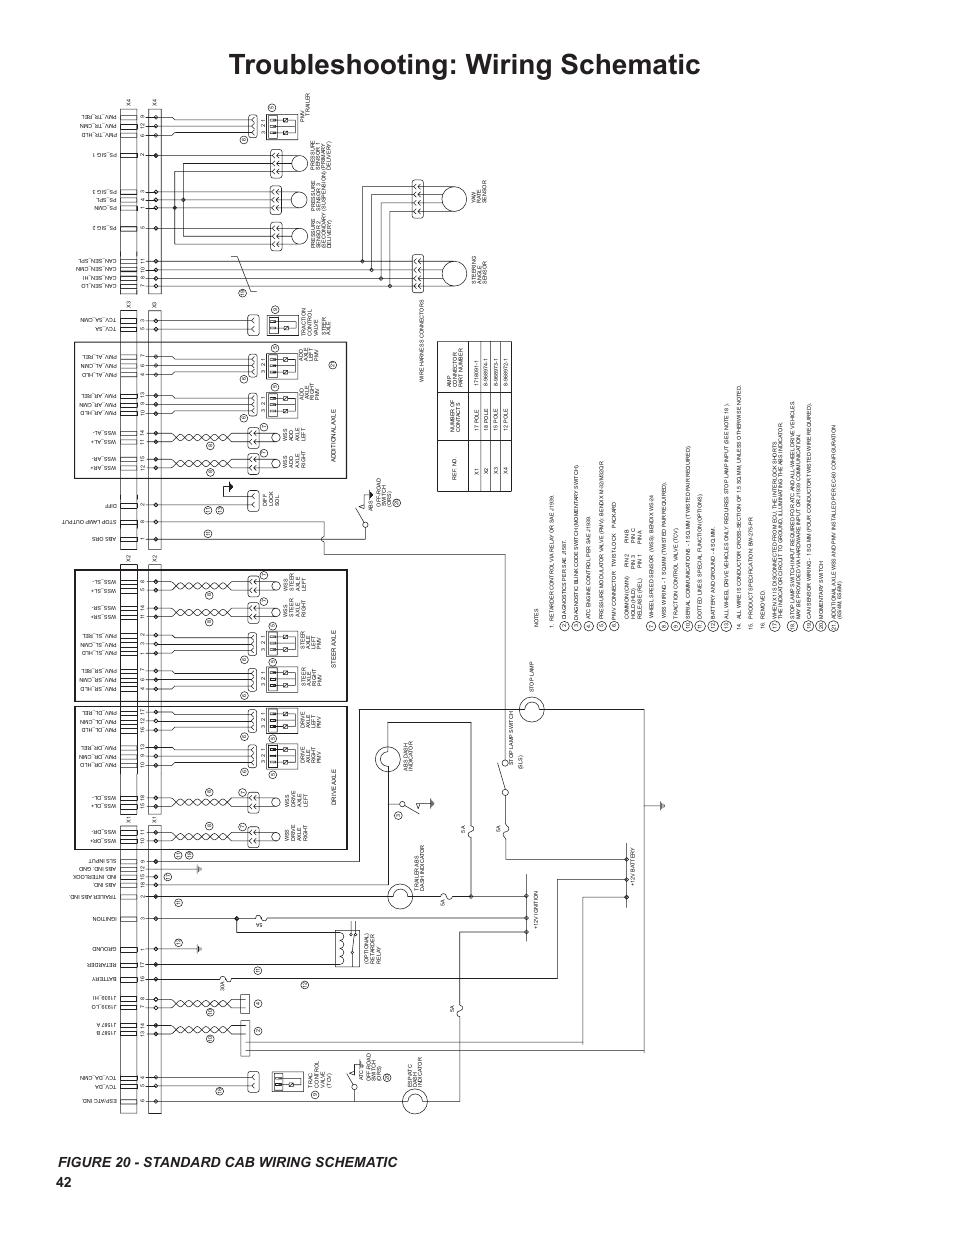 Troubleshooting Wiring Schematic Figure 20 Standard Cab Esp Diagrams Bendix Commercial Vehicle